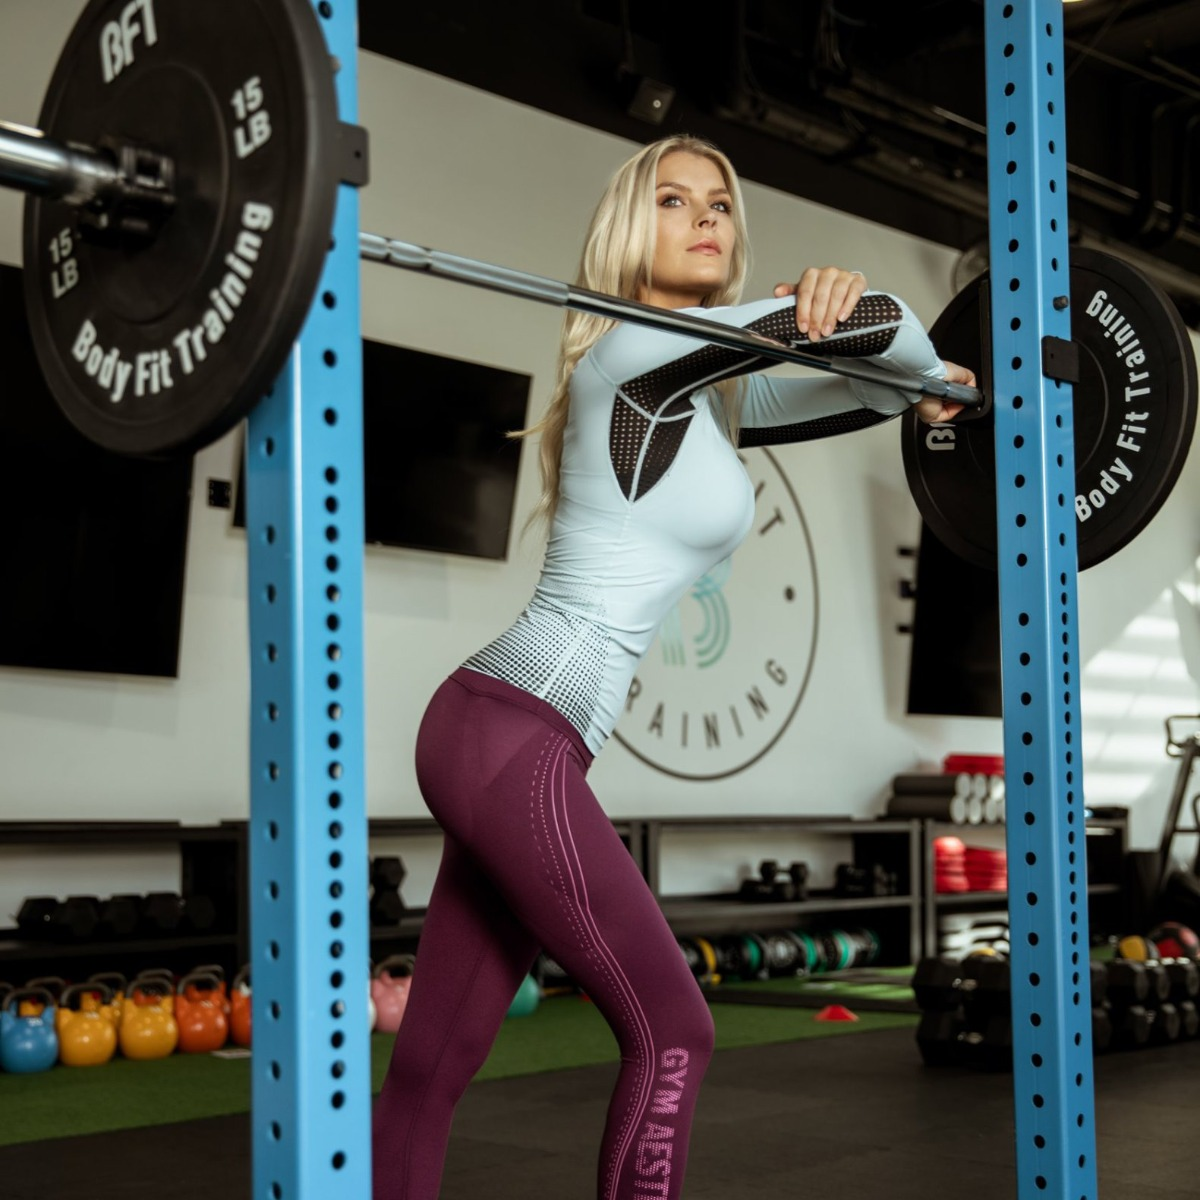 Compression collection for women's fitness and women's fashion with shape up function | Gym Aesthetics